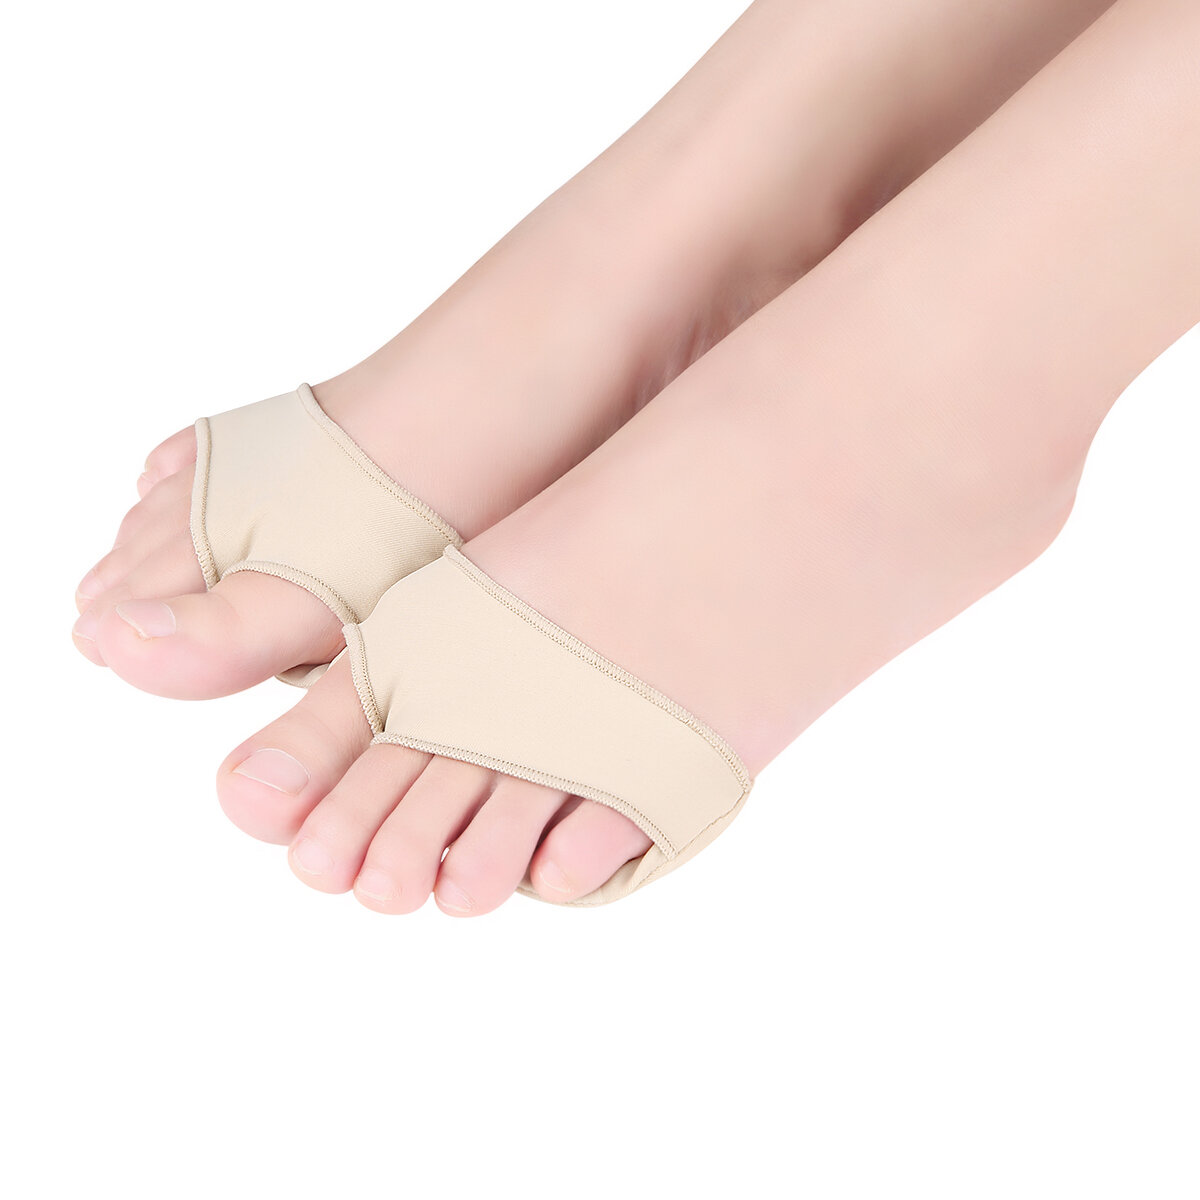 Women Soft Foot Gel Silicone Forefoot Metatarsal Pain Relief Absorber Cushion Ball of Foot Pad